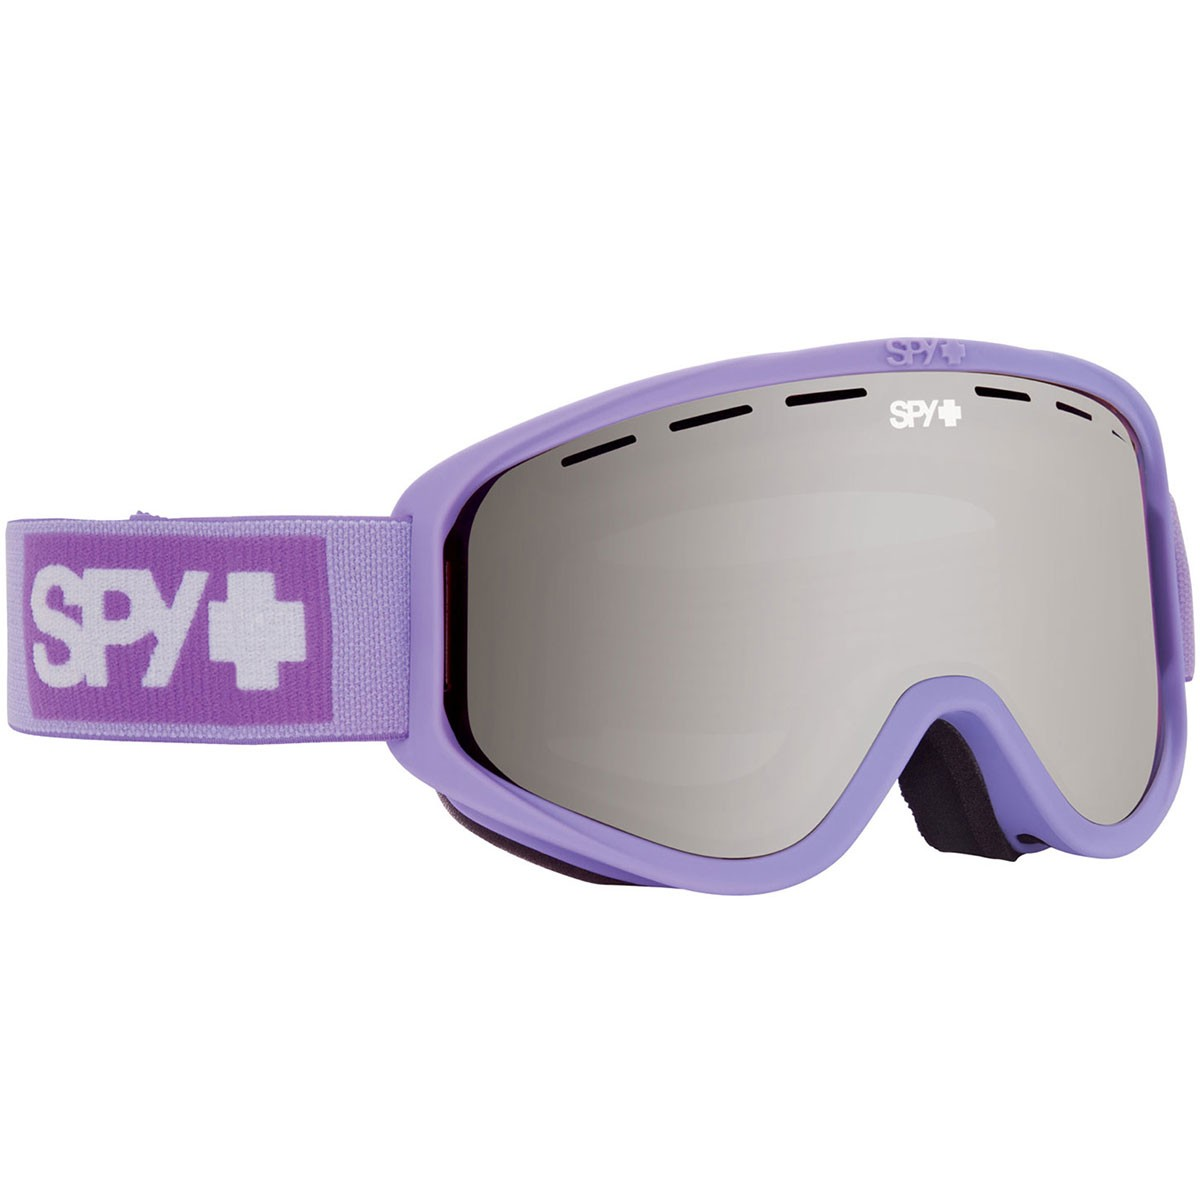 Spy Woot Womens Snowboard Goggles - Elemental Lavender/Silver Mirror with Persimmon